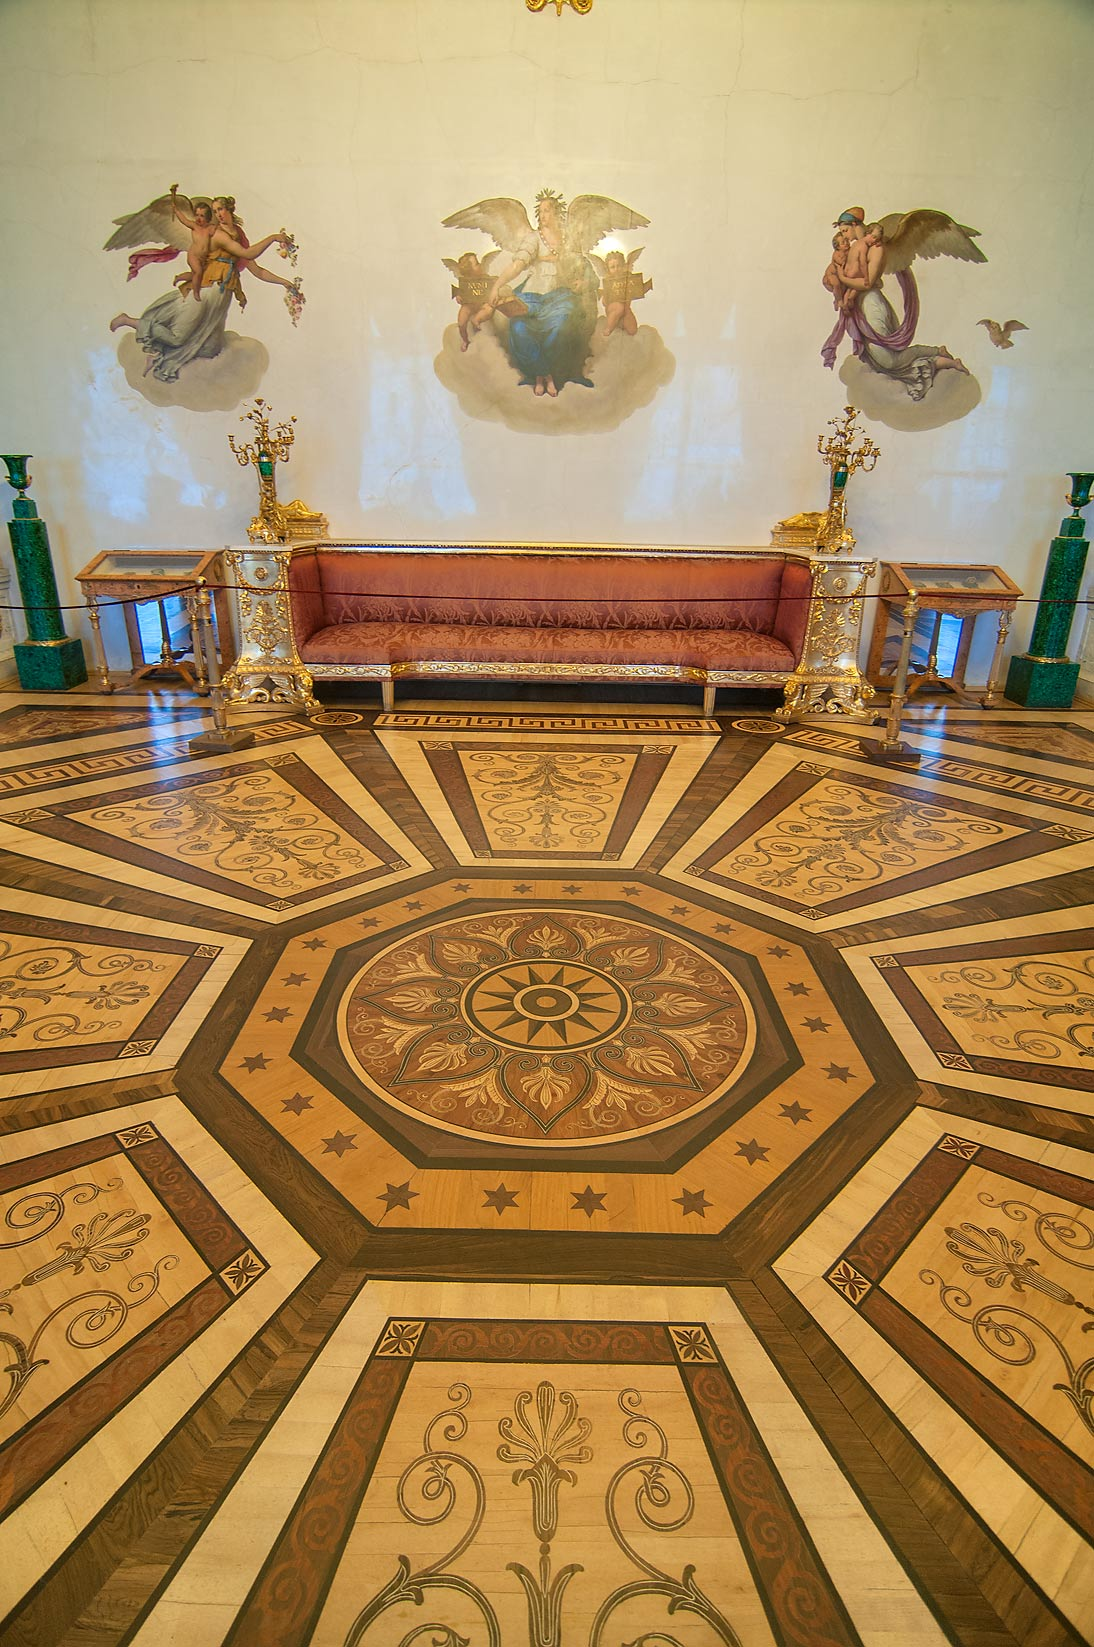 Parquet of Malachite Room in Hermitage Museum. St.Petersburg, Russia